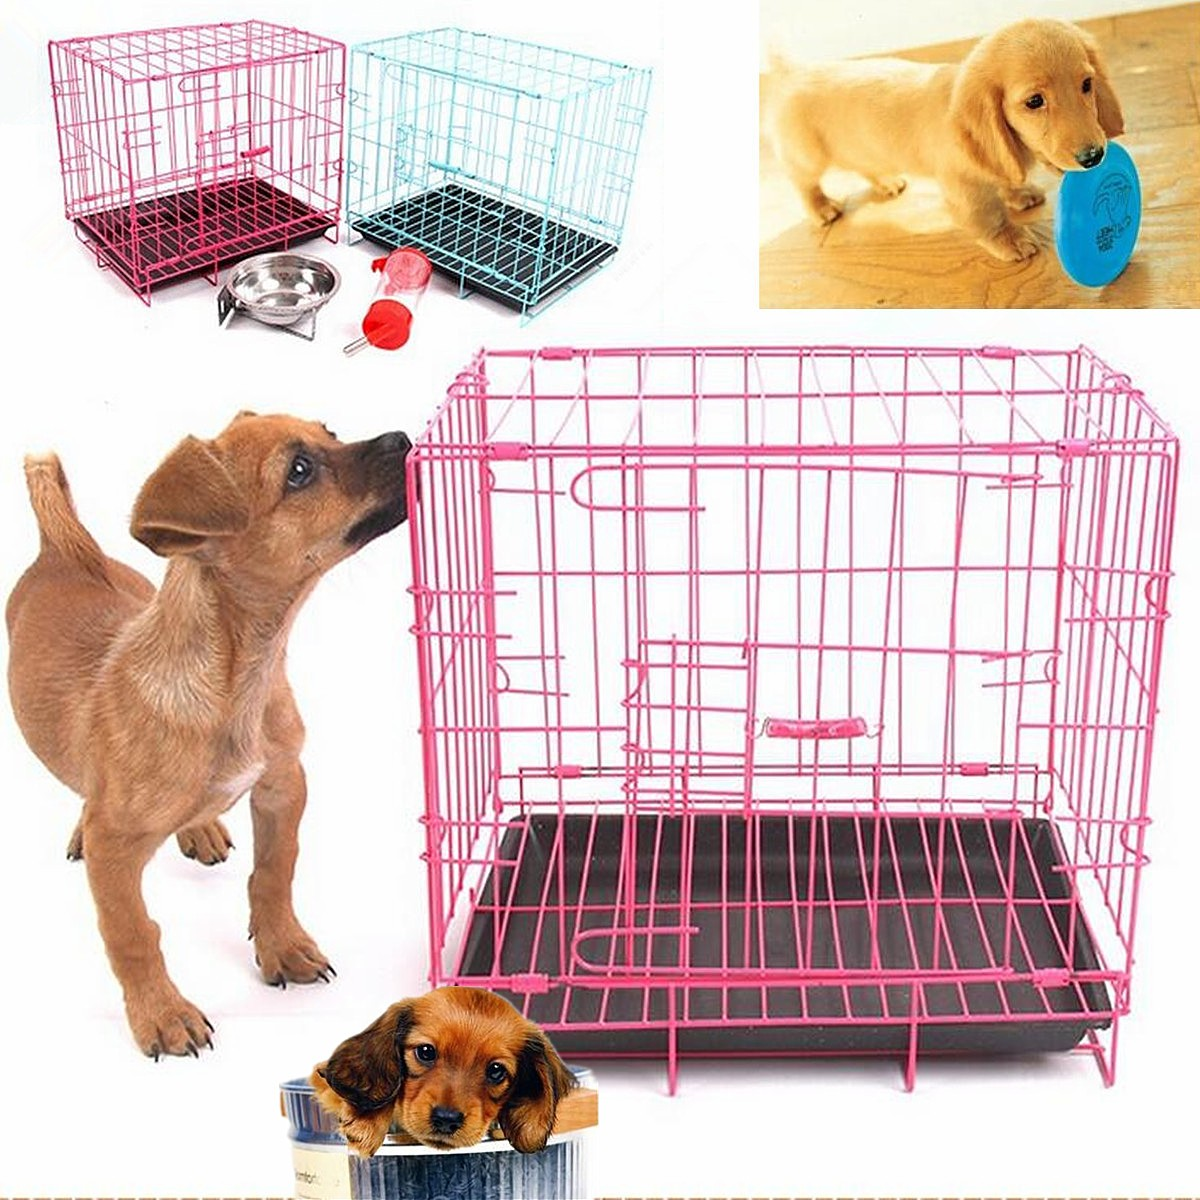 "19.69""x13.78""x16.93"" Dog Crate with Tray Foldable Metal Pet Cage Kennel House For Cat Dog Small Animals"